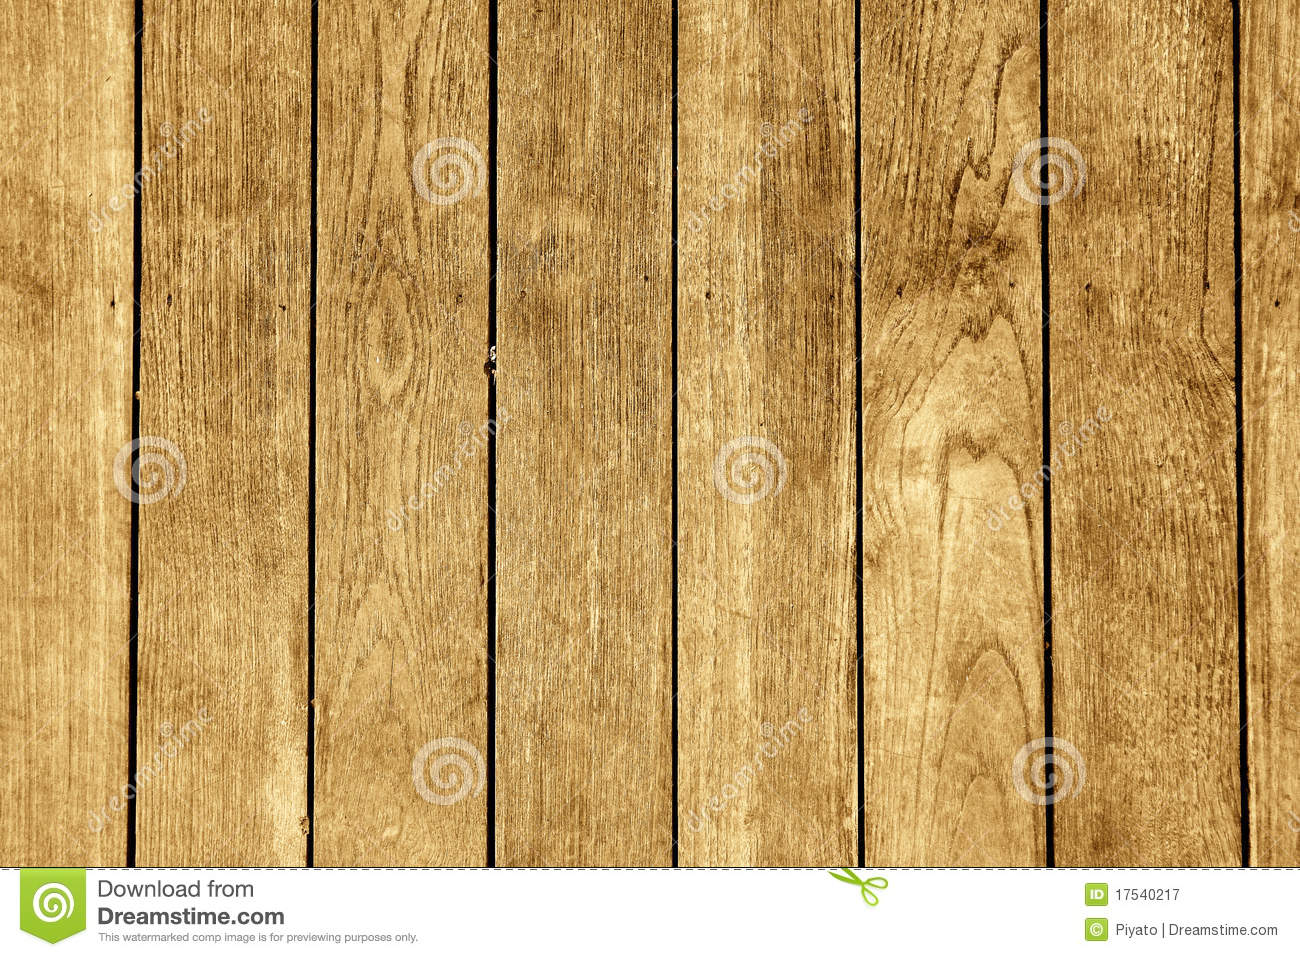 Wood texture photo free download - Old Wood Texture Background Pattern Royalty Free Stock Photography Image 17540217